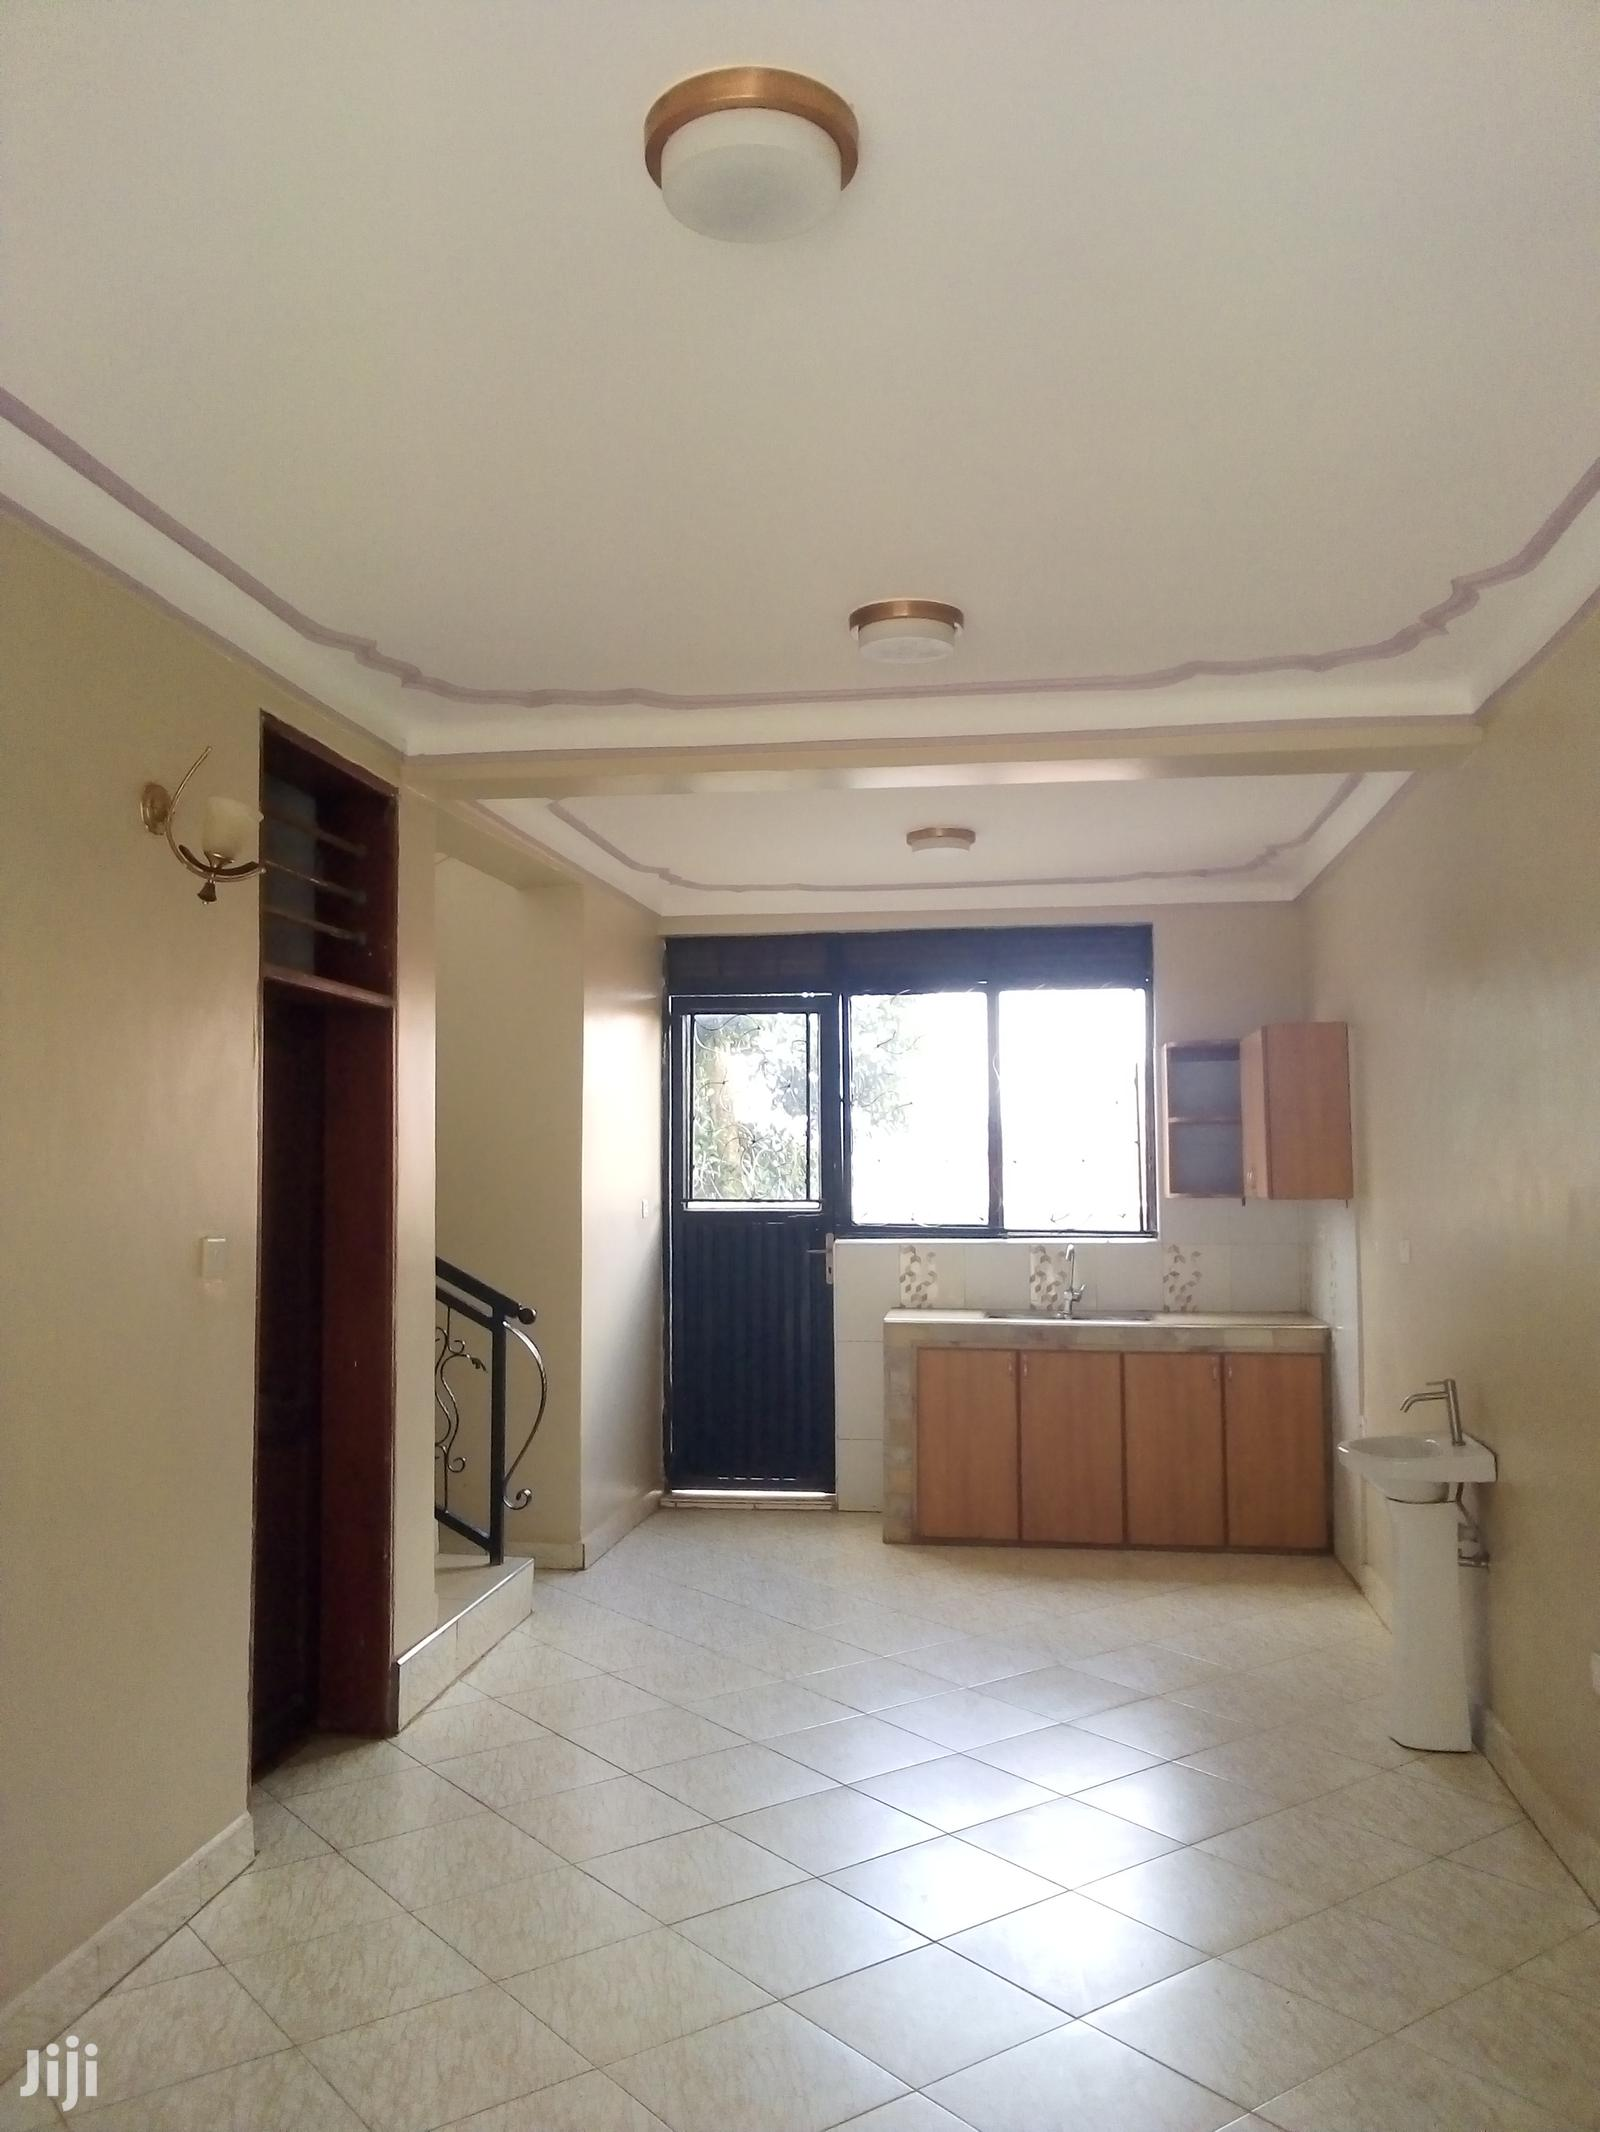 Archive: Namugongo 2 Bedroom Duplex House For Rent